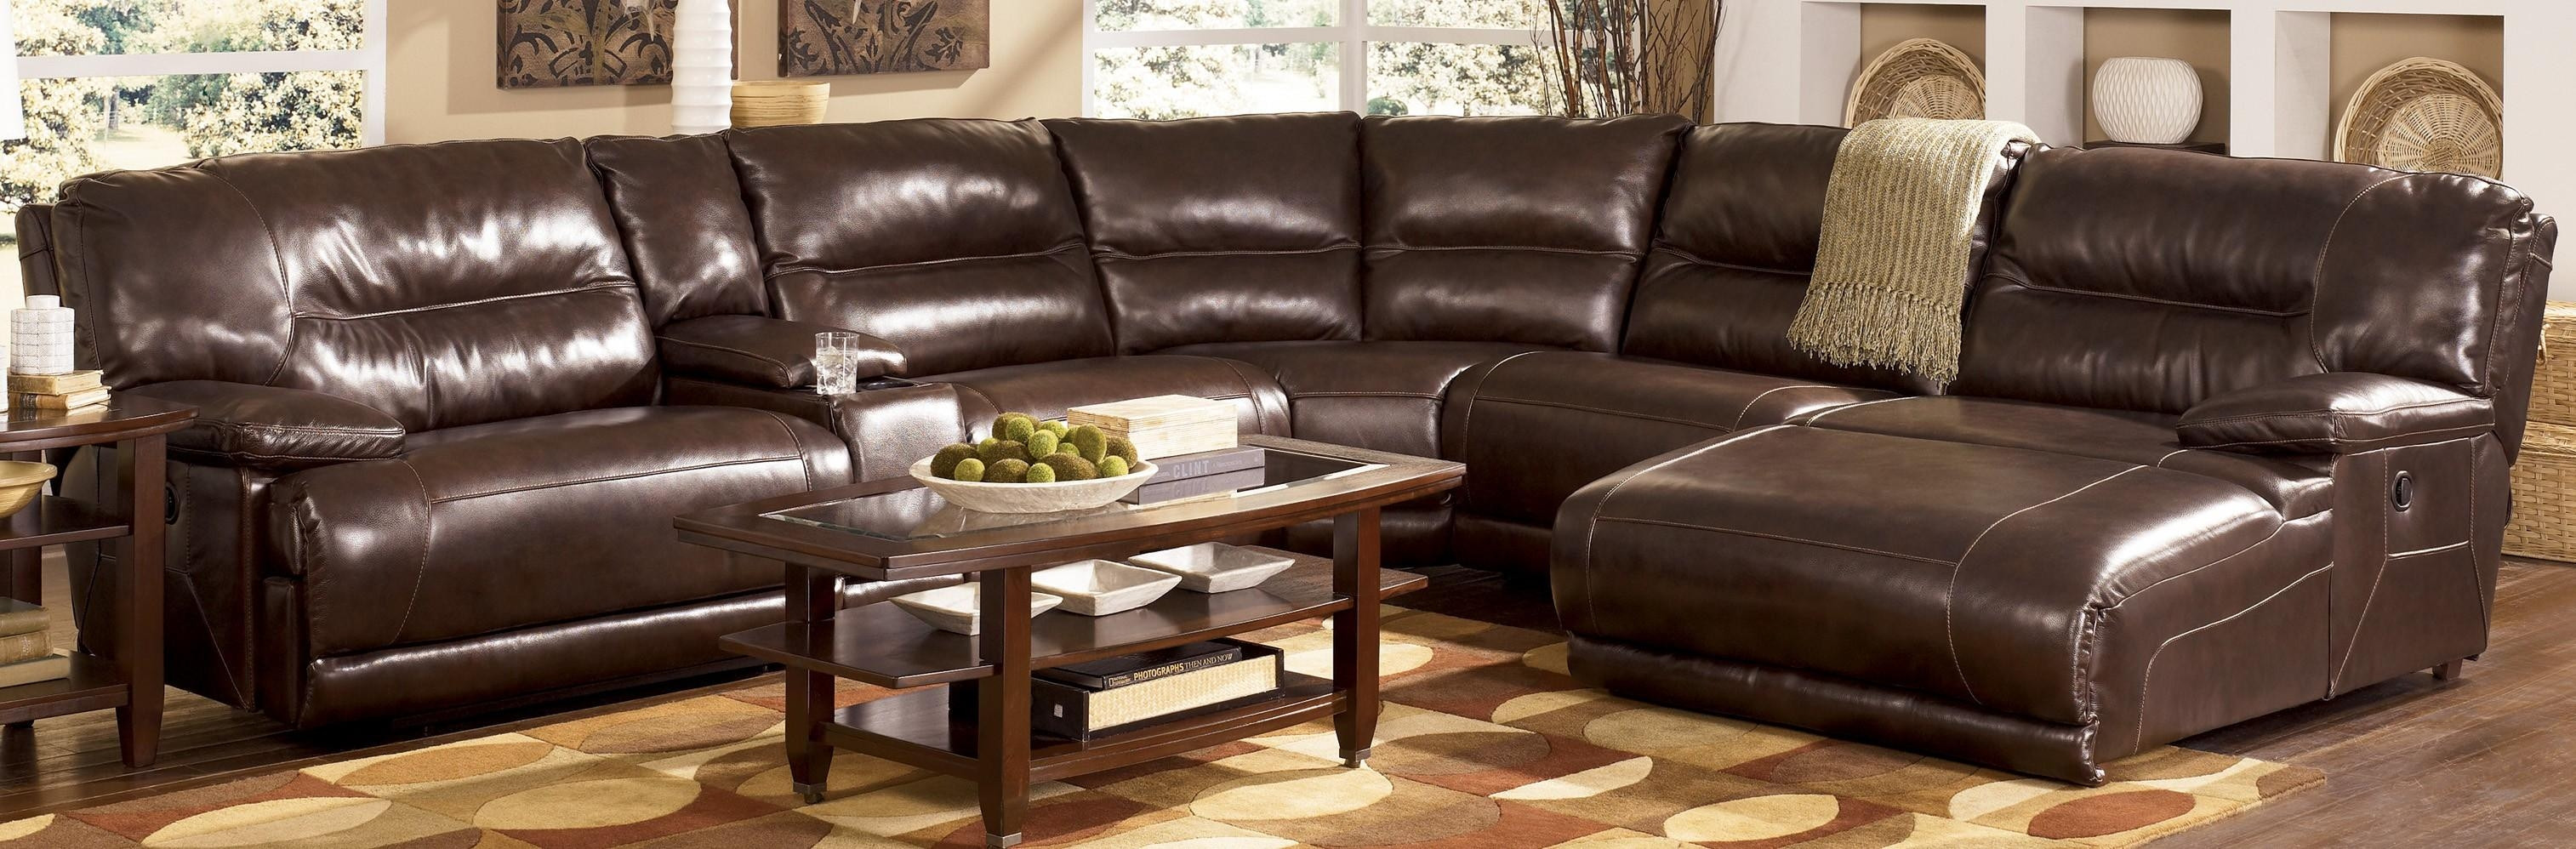 Best ideas about Lazy Boy Leather Reclining Sofa . Save or Pin 20 Best Ideas Lazy Boy Leather Sectional Now.